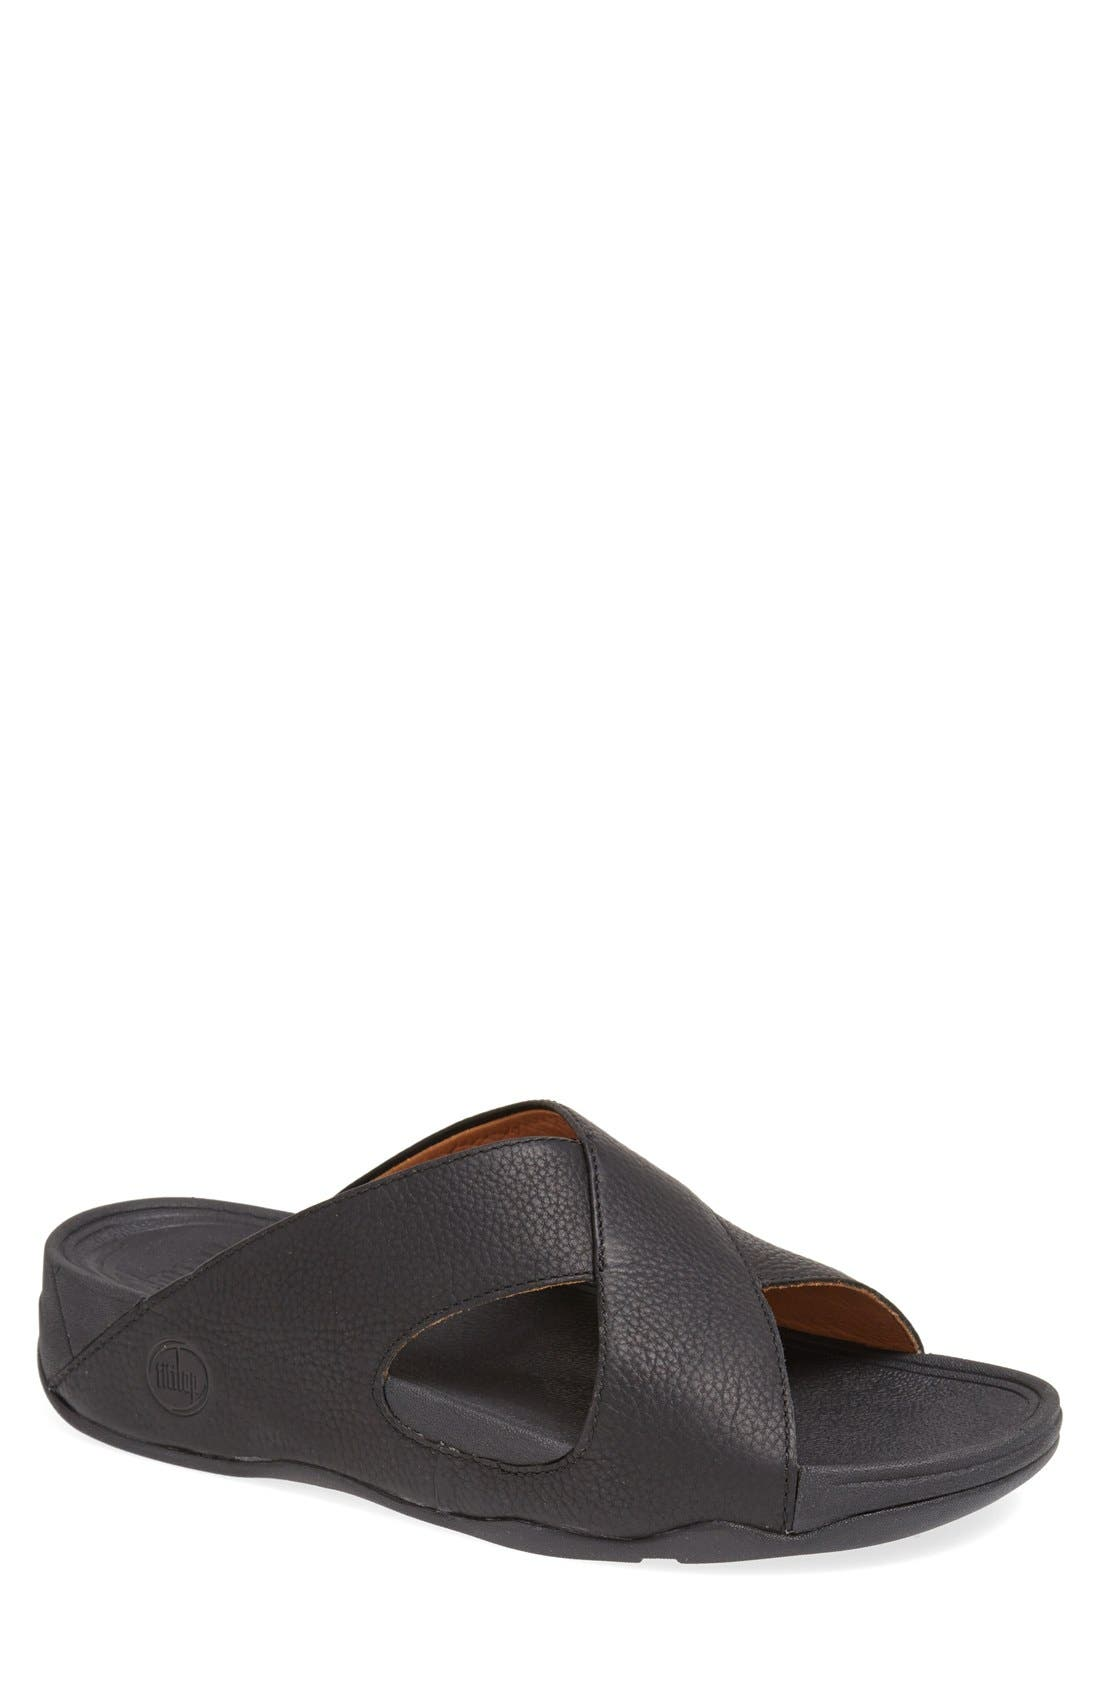 Xosa<sup>™</sup> Leather Slide Sandal, ...